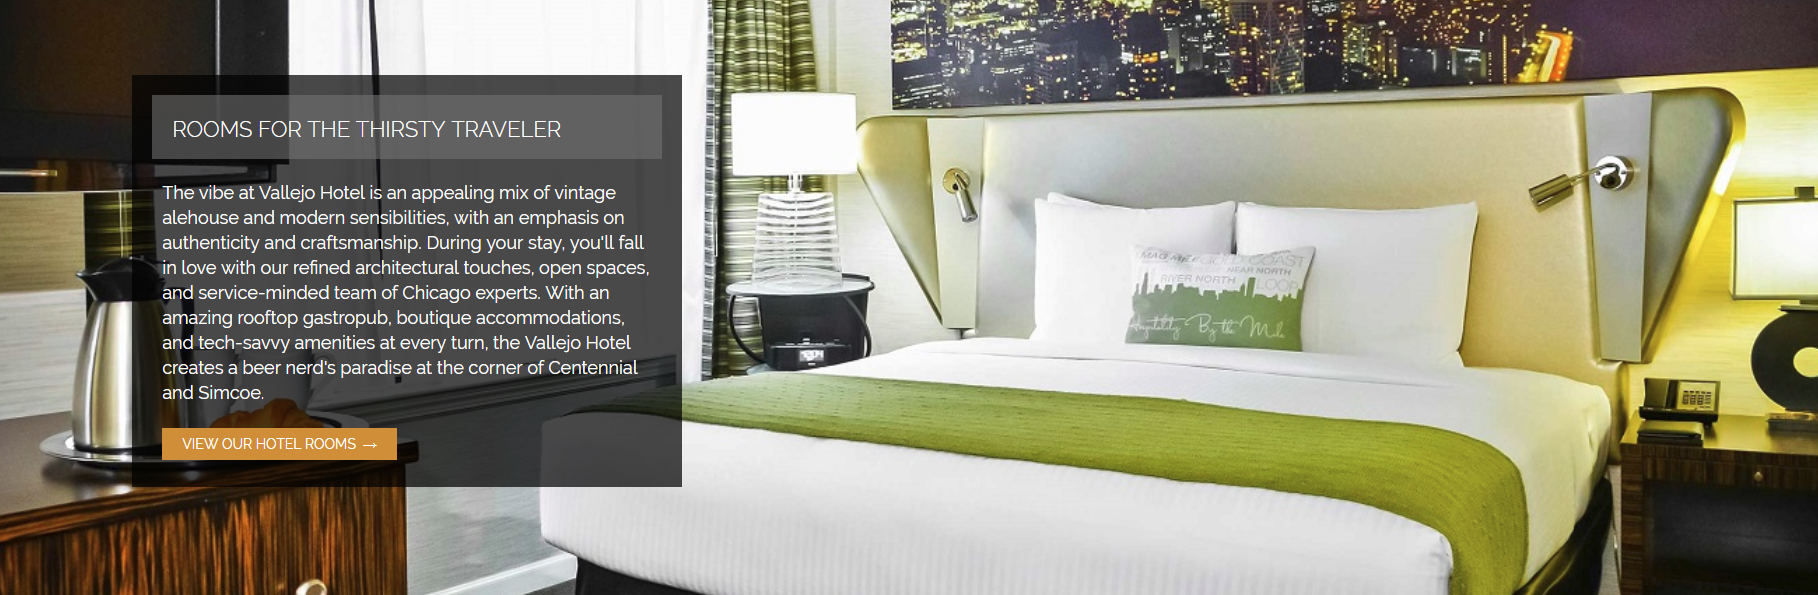 rooms page content on the homepage of a hotel website